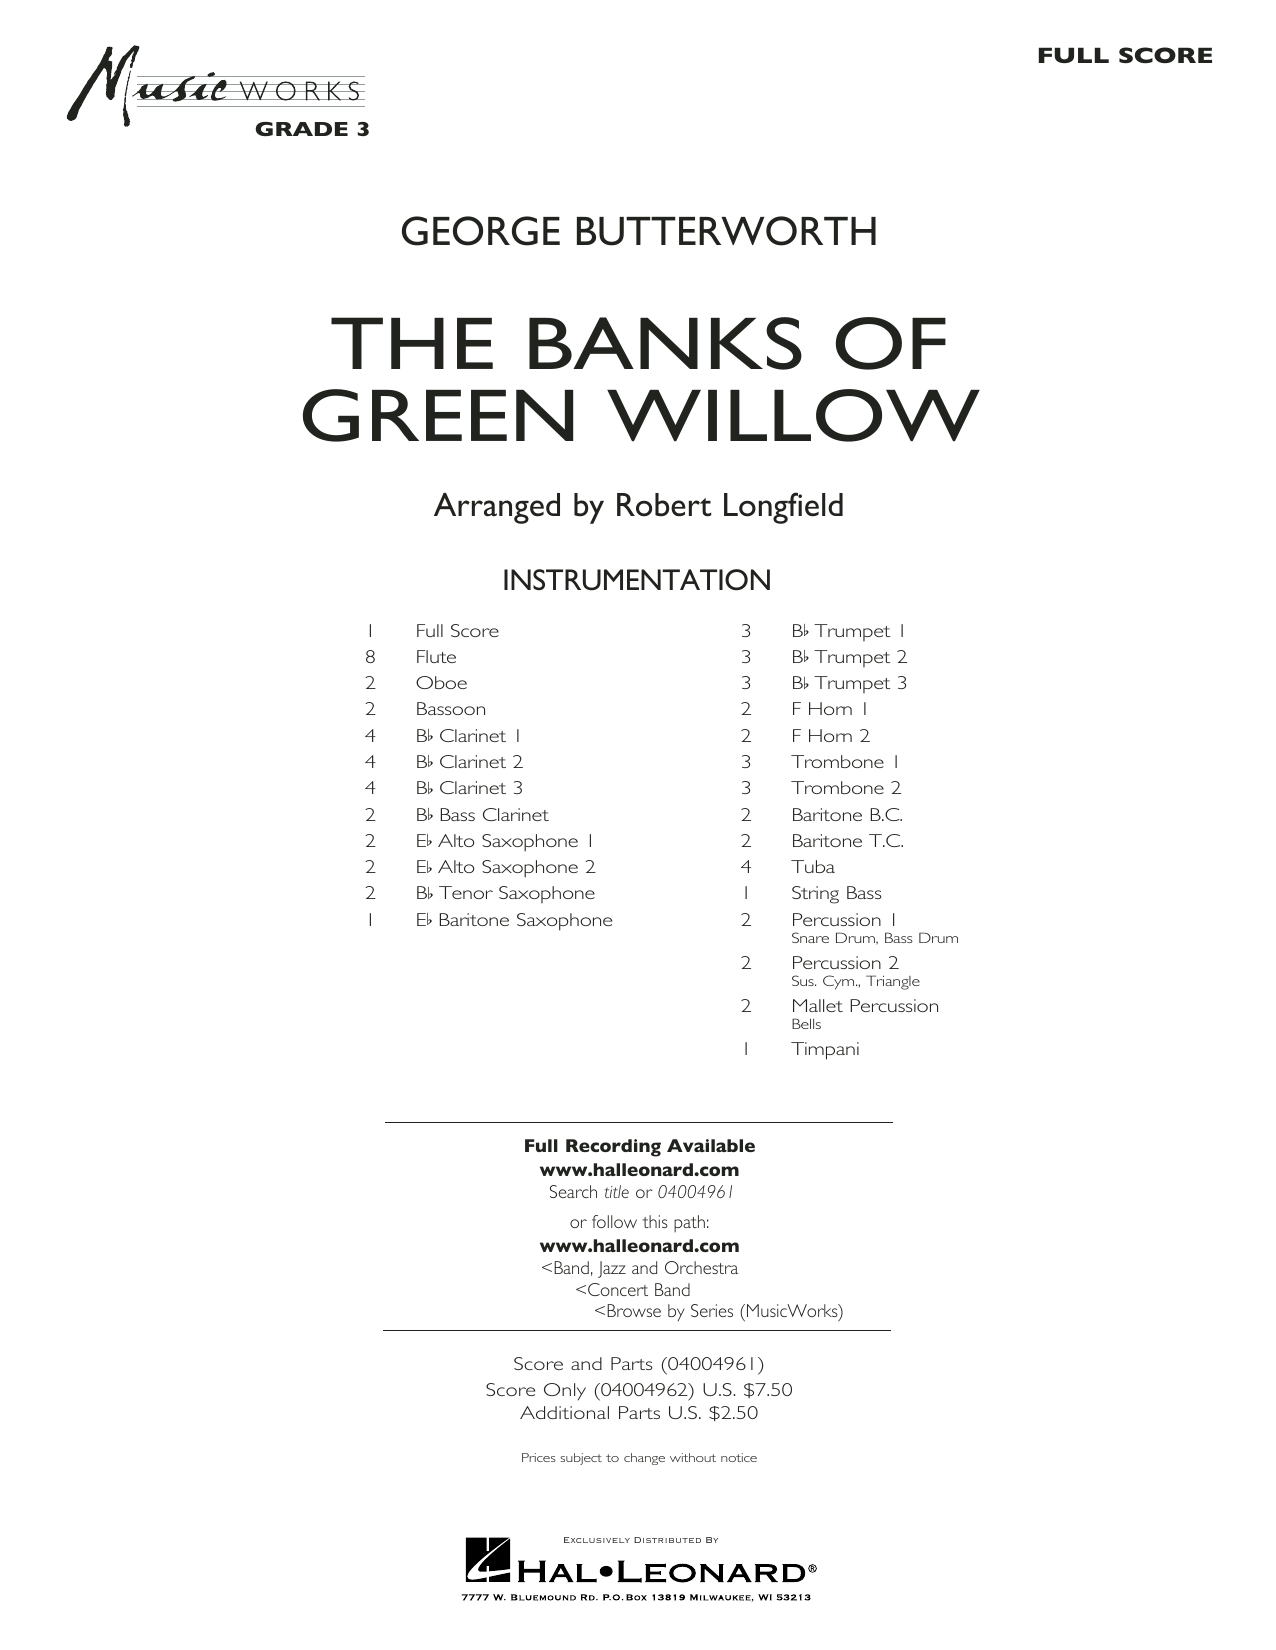 Robert Longfield The Banks of Green Willow - Conductor Score (Full Score) sheet music notes and chords. Download Printable PDF.